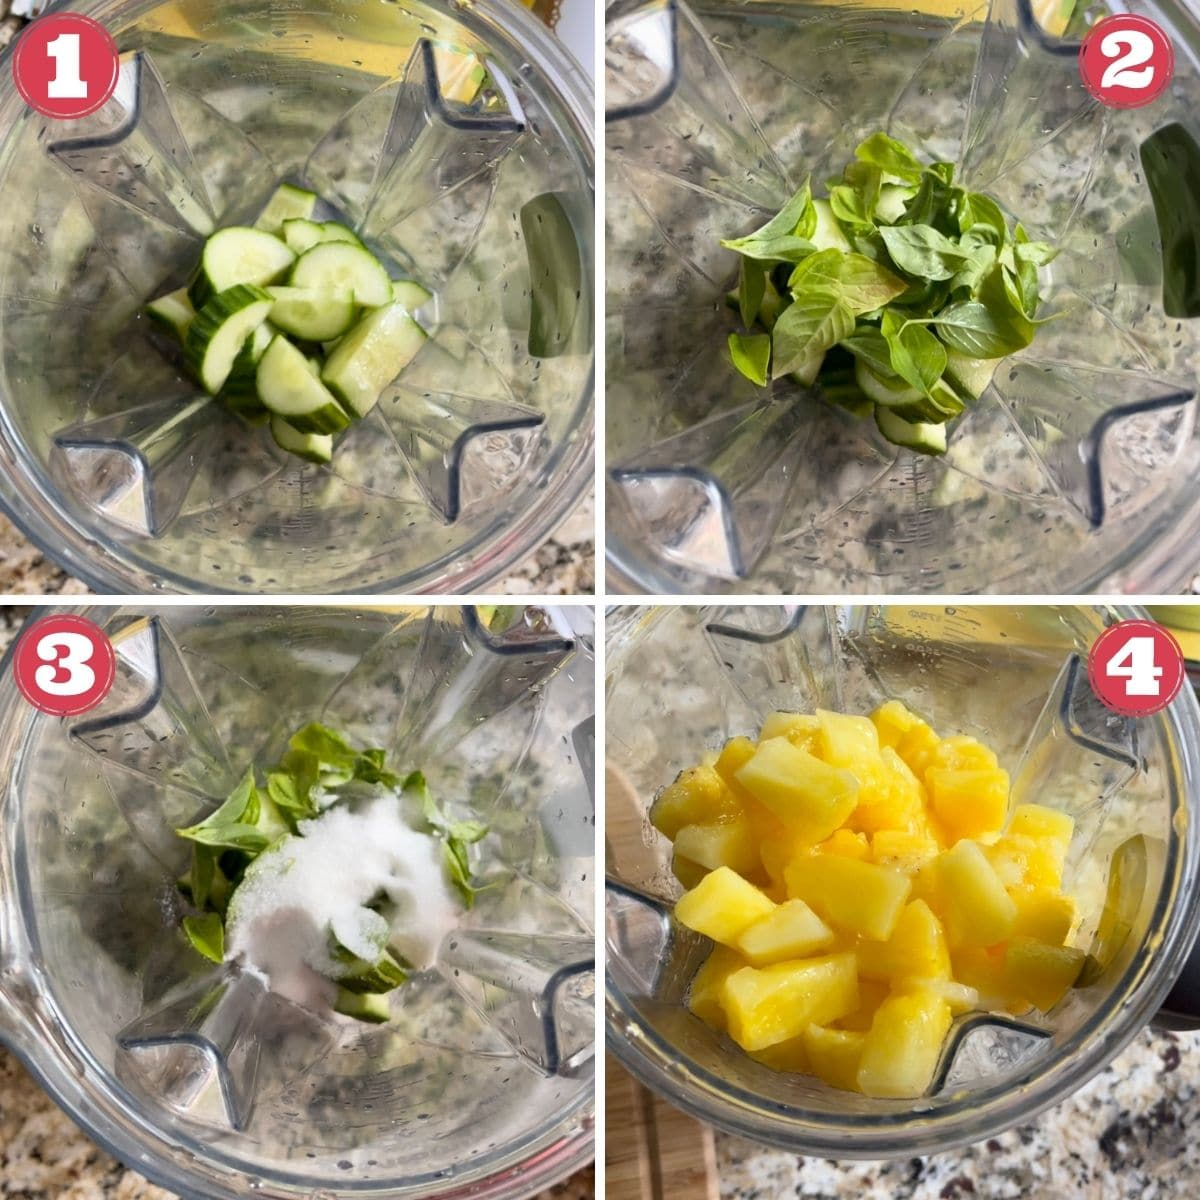 from left to right blender with cucumber, basil added to blender, sugar added to blender, pineapple added to blender